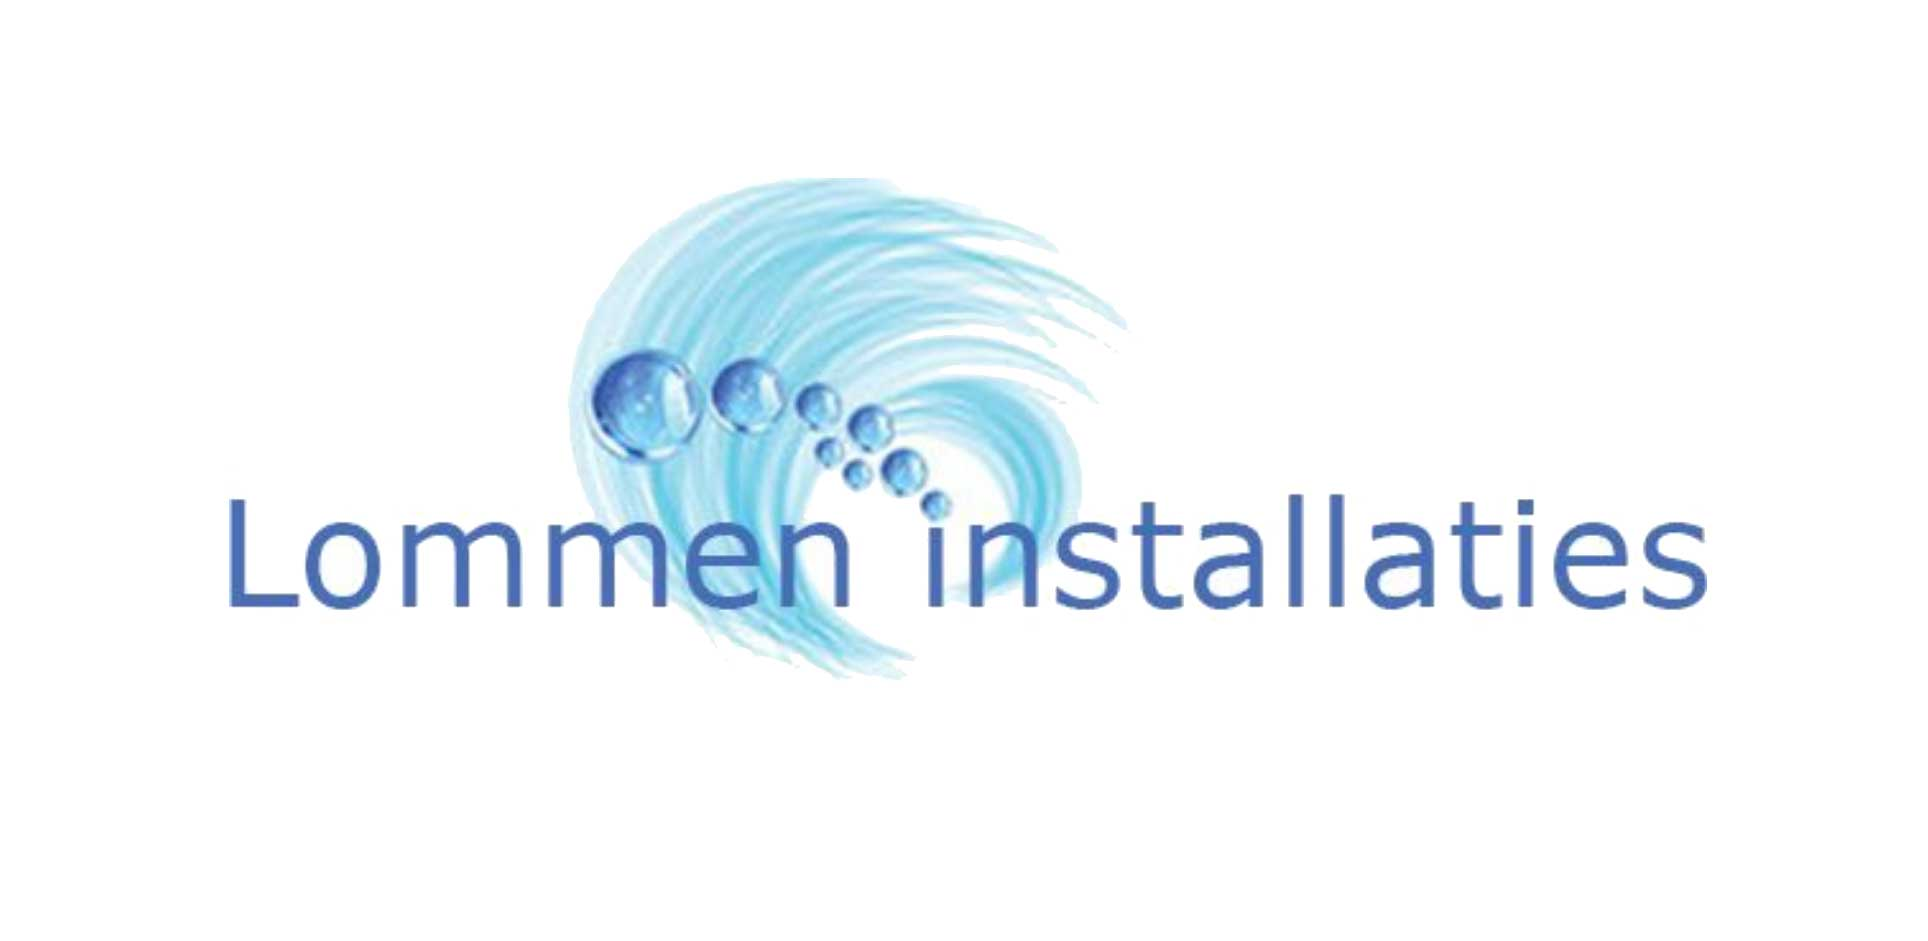 Lommen Installaties is sponsor van DVC '16